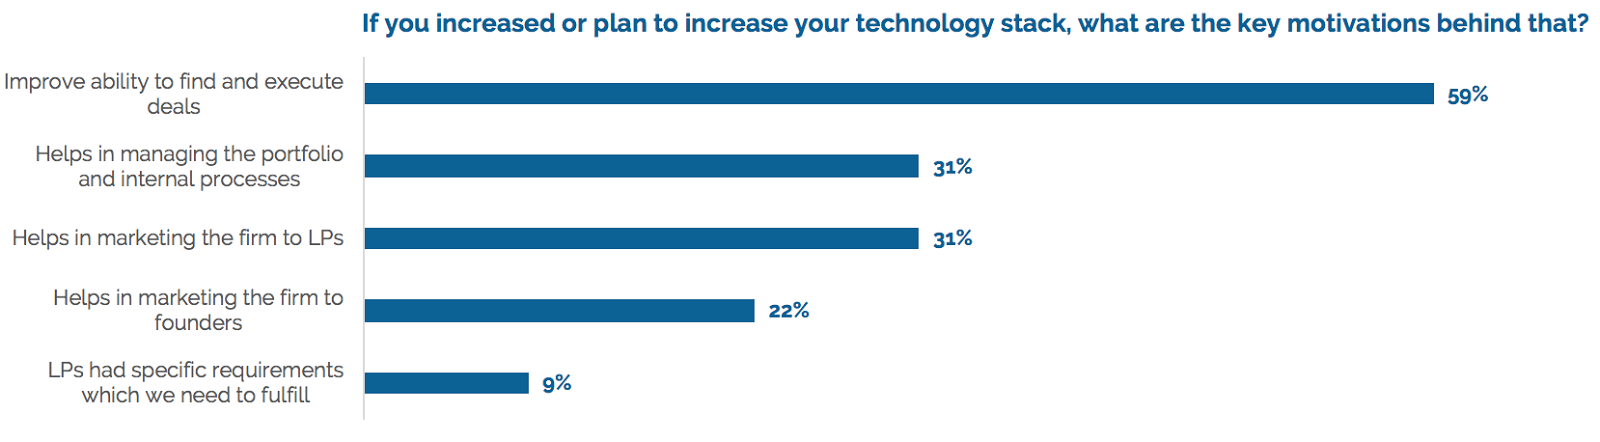 """if you plan to increase your tech stack, what are the key motivations behind that? """"improve ability to find and execute deals (59%), helps in manaing the portfolio and internal processes (31%), helps in marketing the firm to LPs (31%), helps in marketing the firm to founders (22%), LPs had specific requirements which we need to fulfill (9%)."""